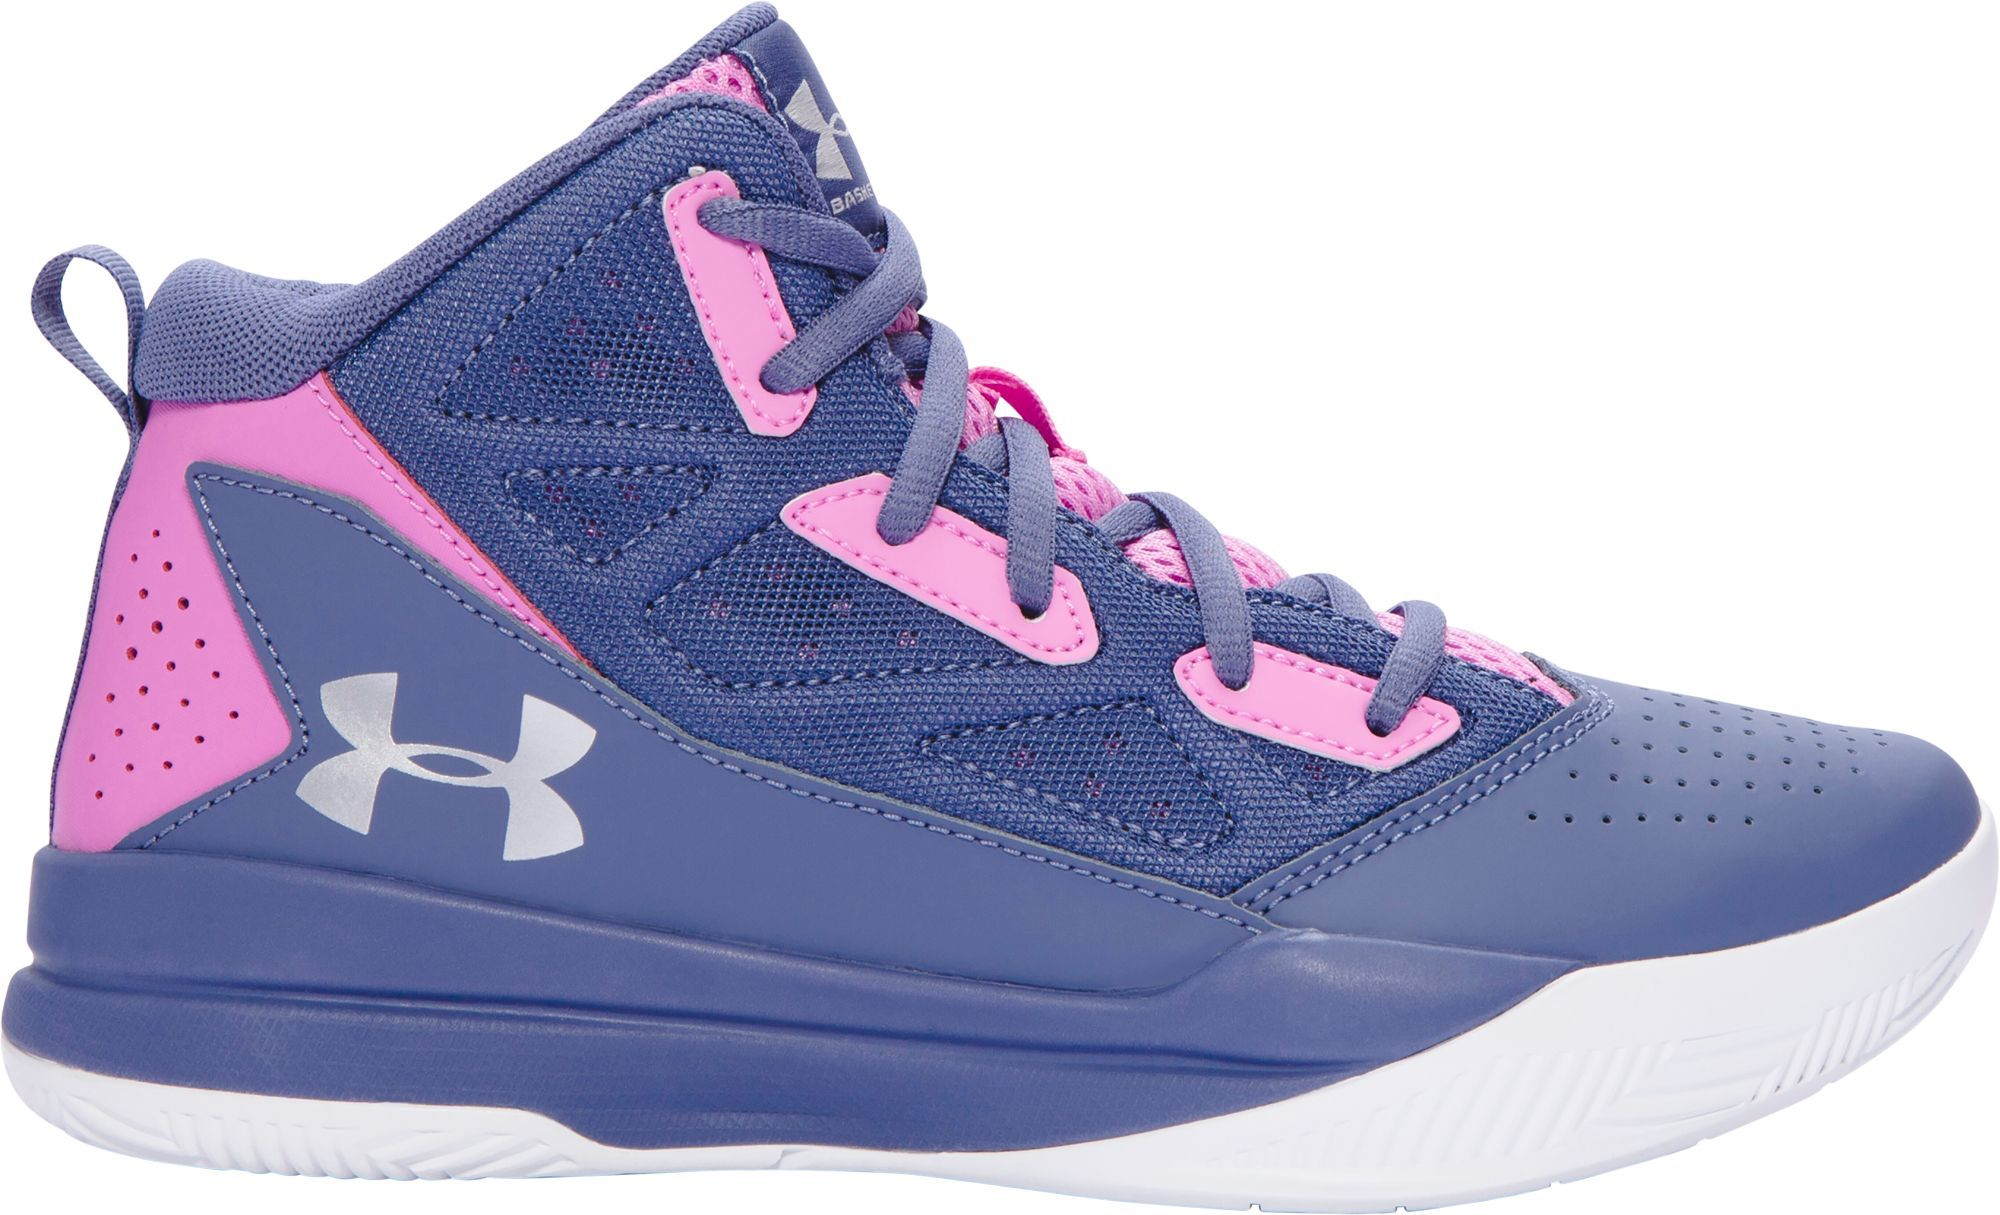 72300d7377e046 Top 10 Best Cool Basketball Shoes For Girls Comparison | Reviews in ...